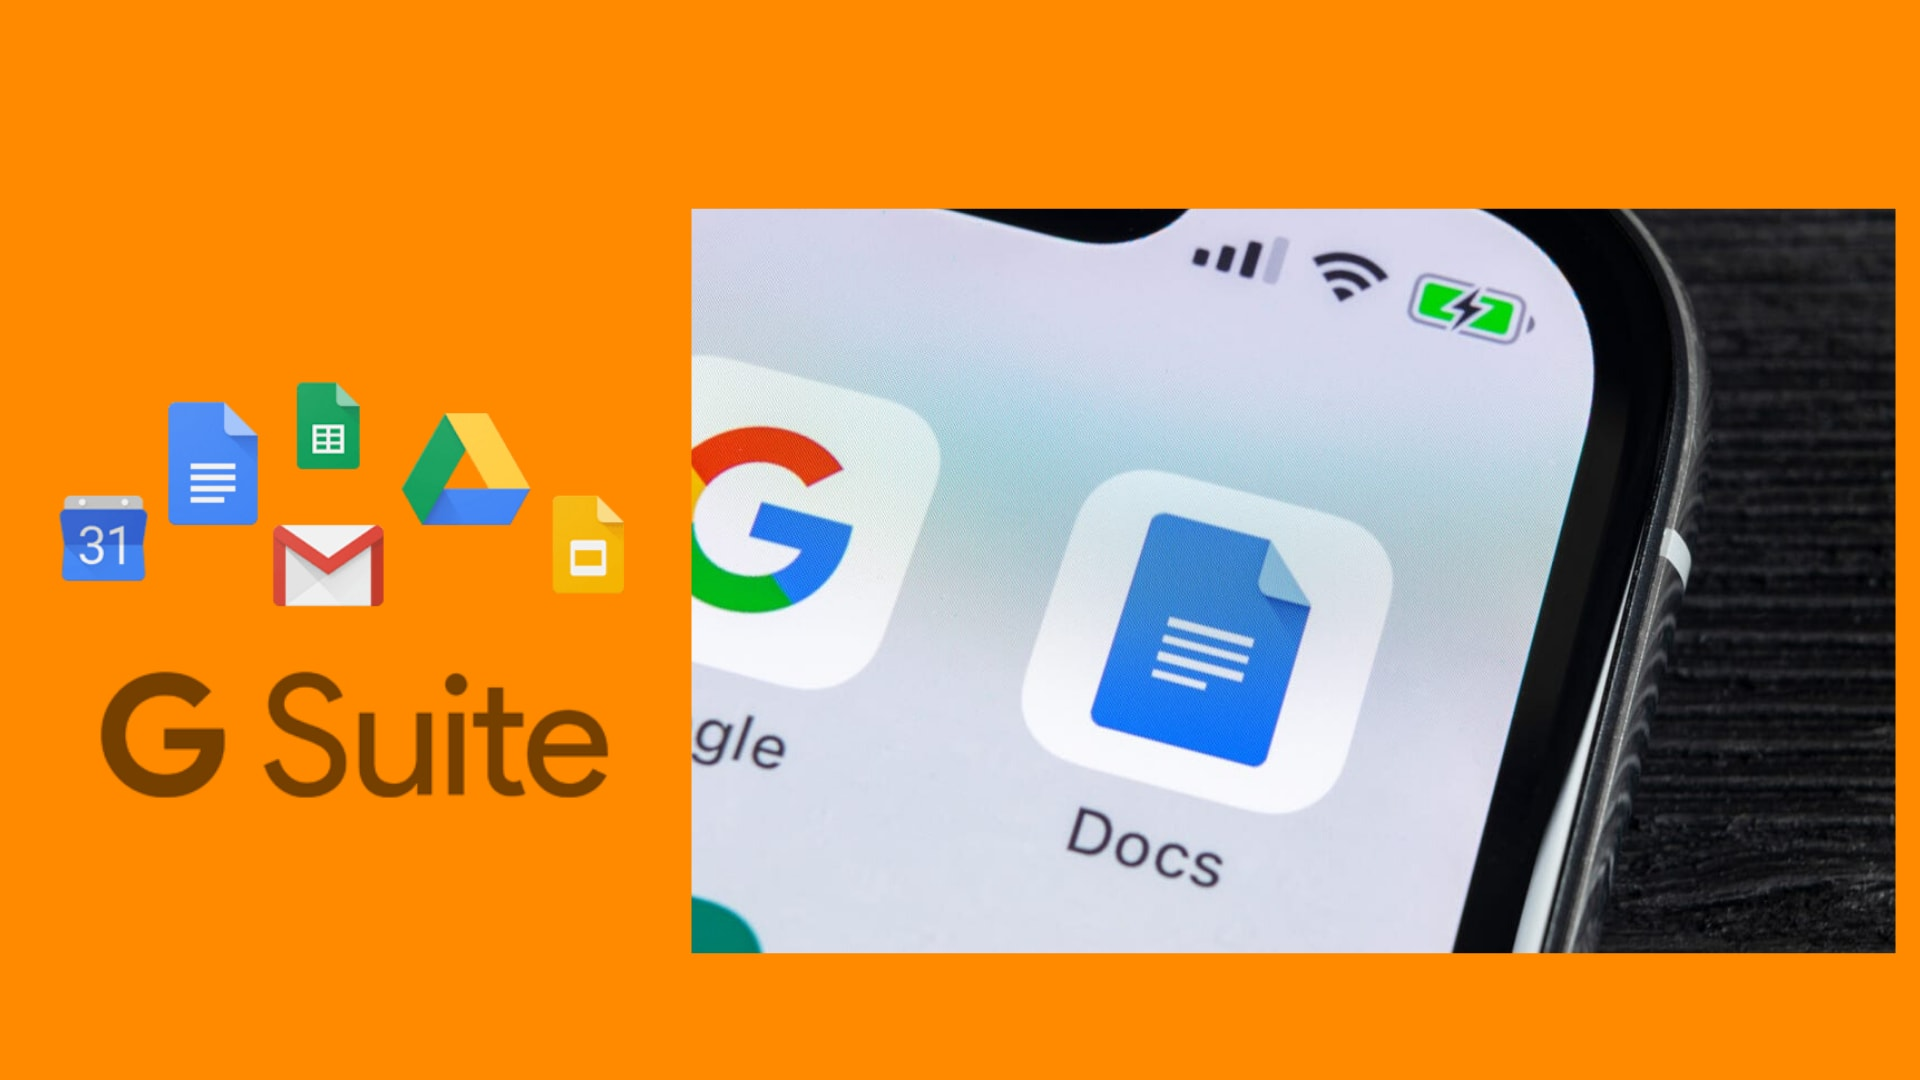 G suite - How to Add Strikethrough in Google Docs with shortcut keys